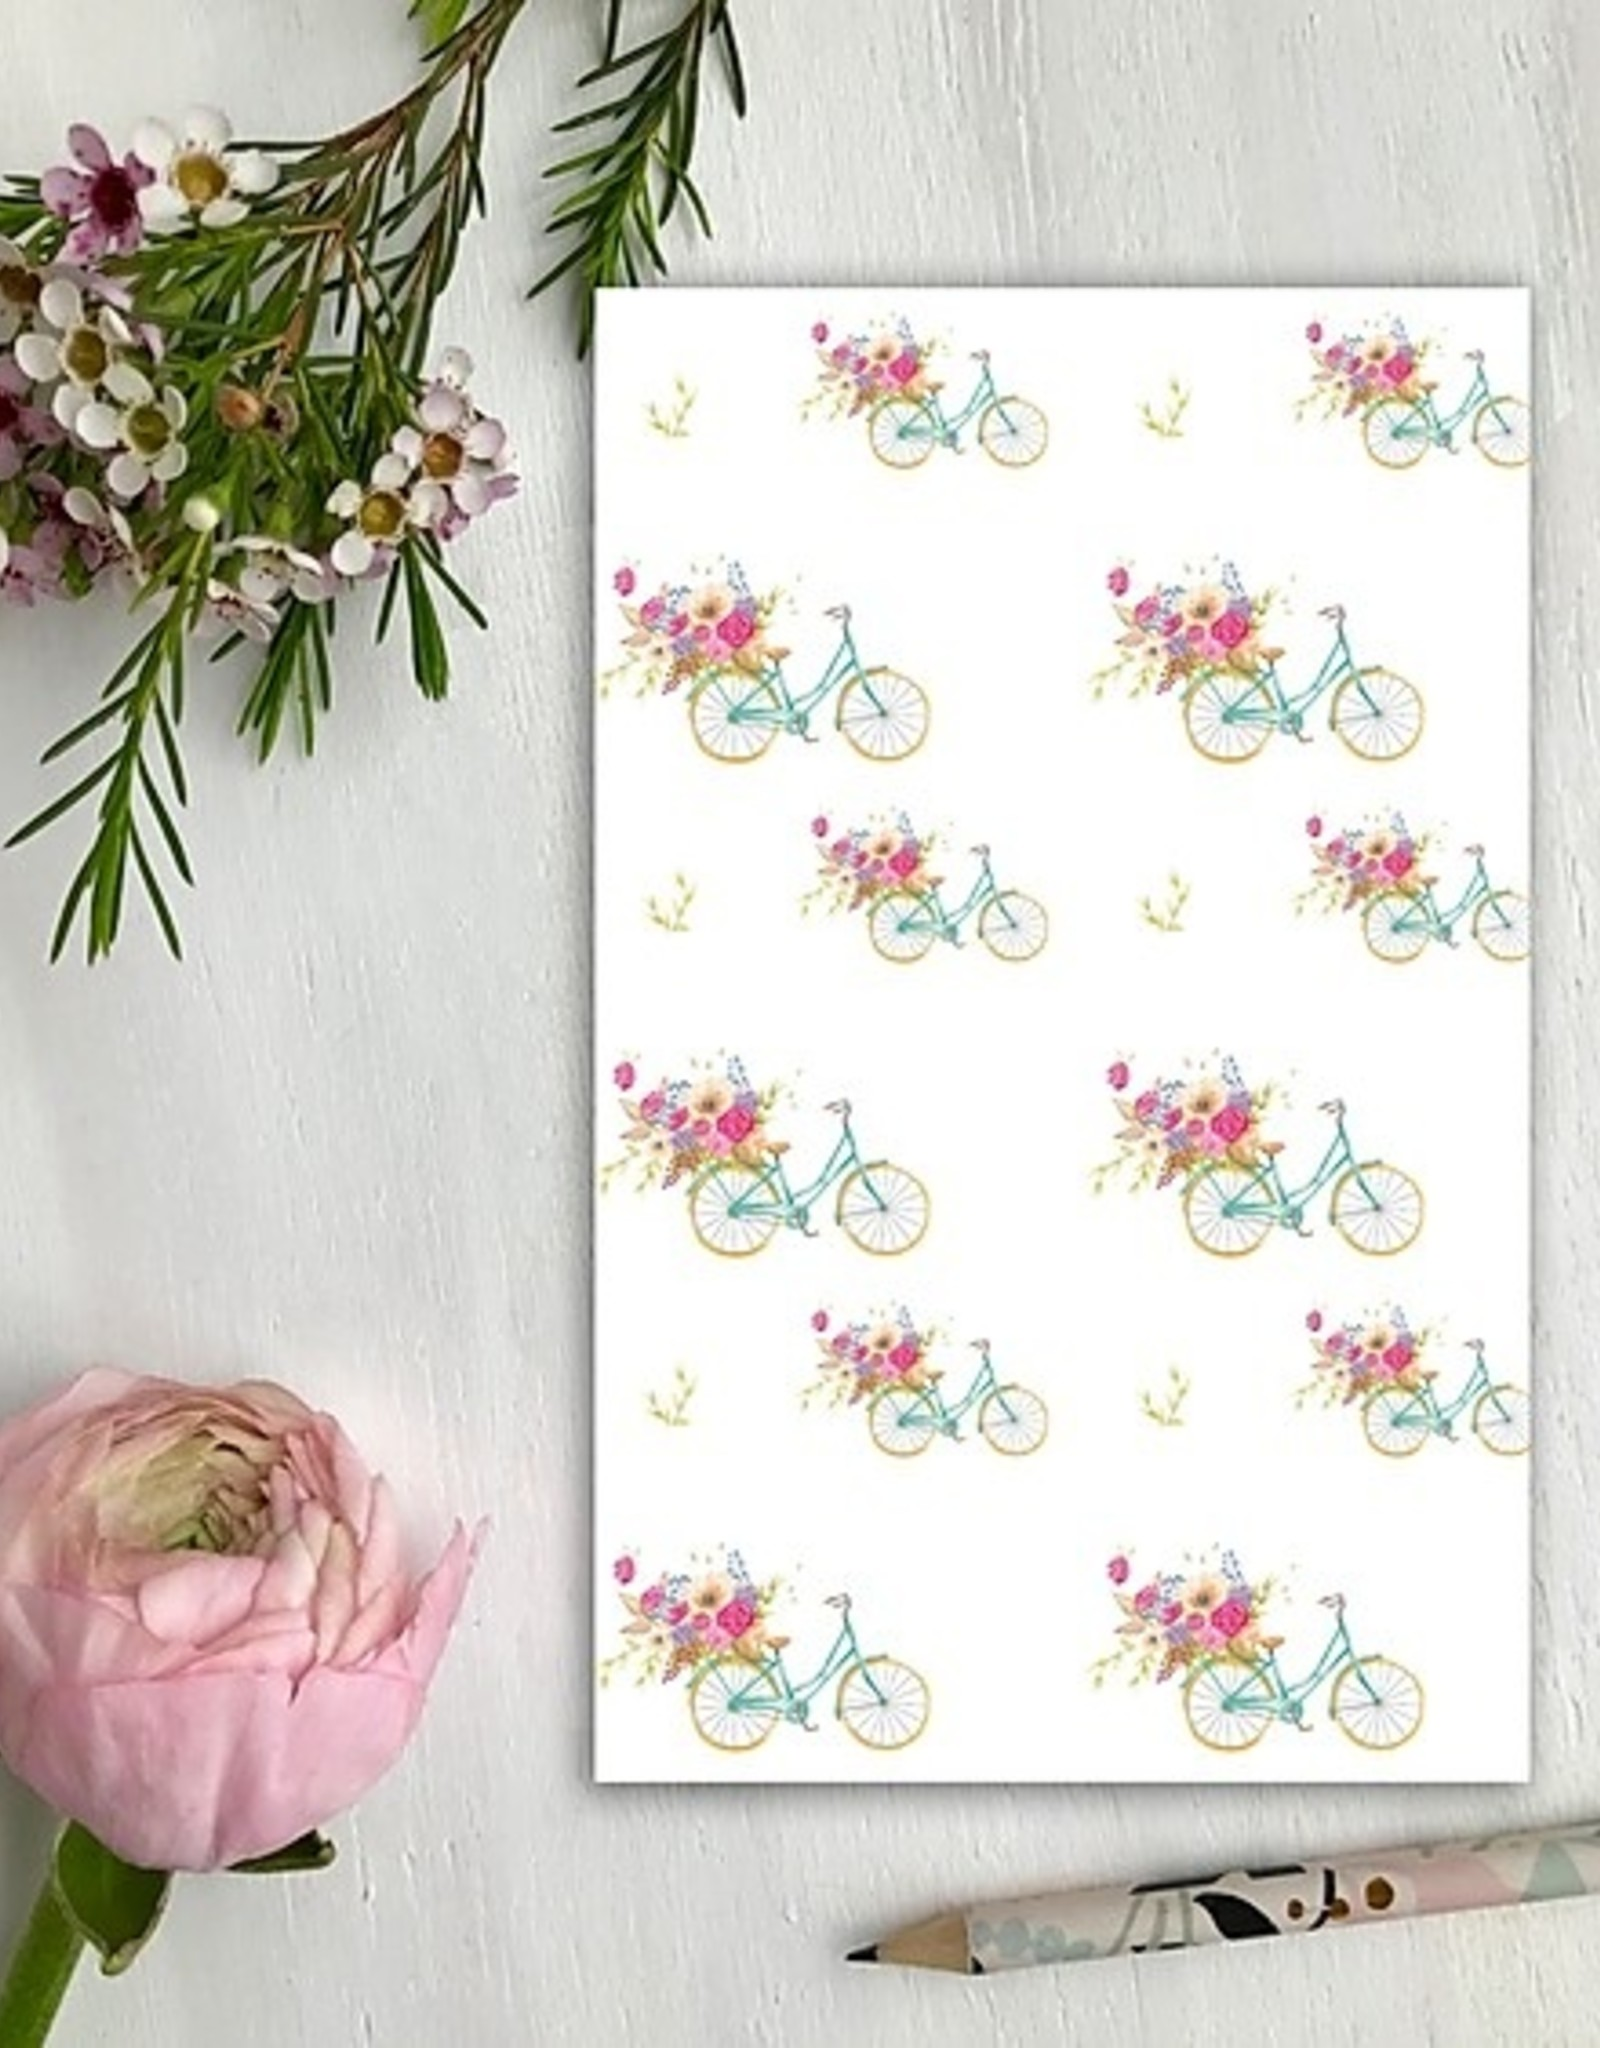 CAHIER DE NOTES BICYCLETTE